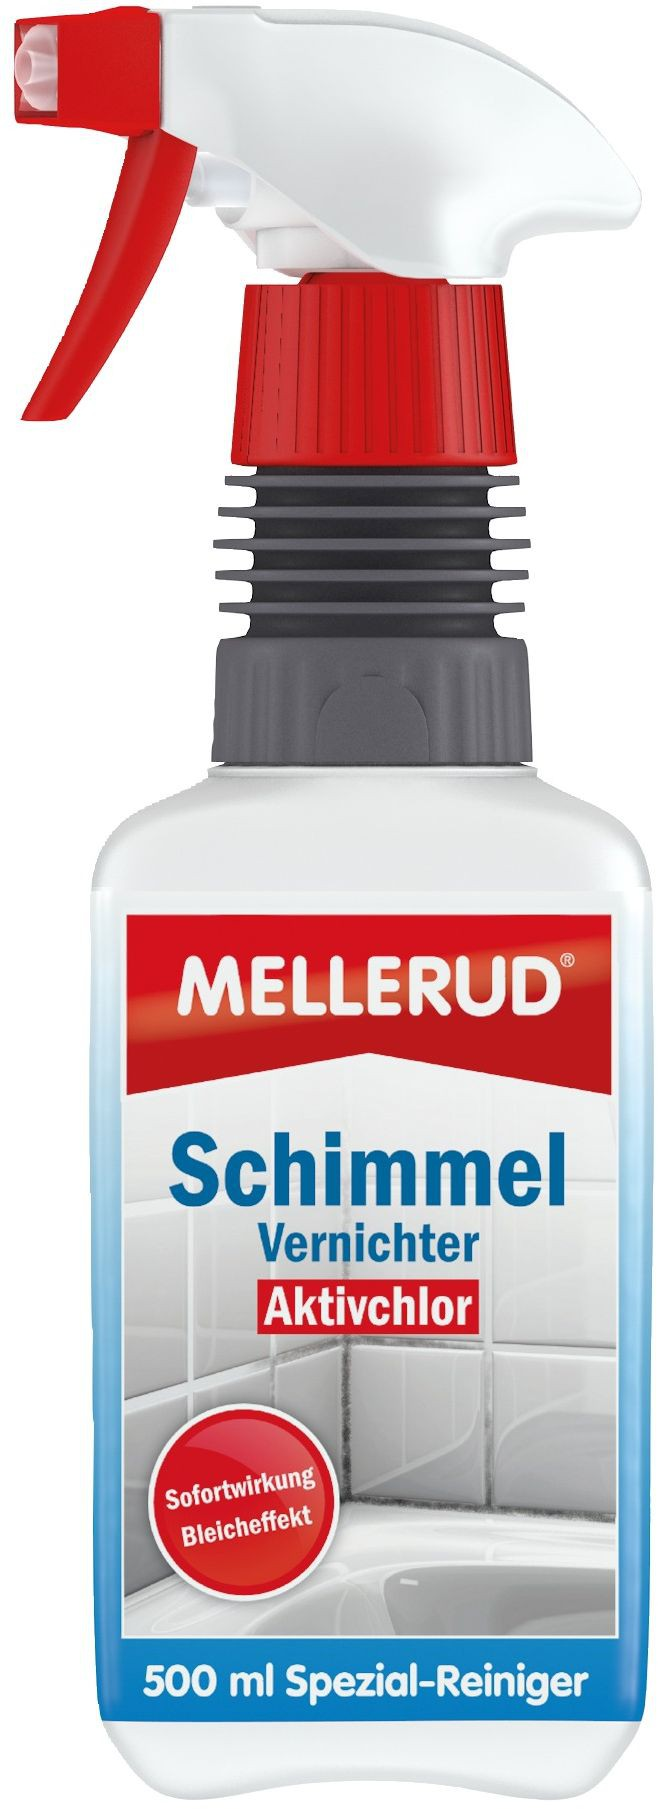 mellerud schimmel vernichter chlorhaltig 500 ml flasche online kaufen. Black Bedroom Furniture Sets. Home Design Ideas